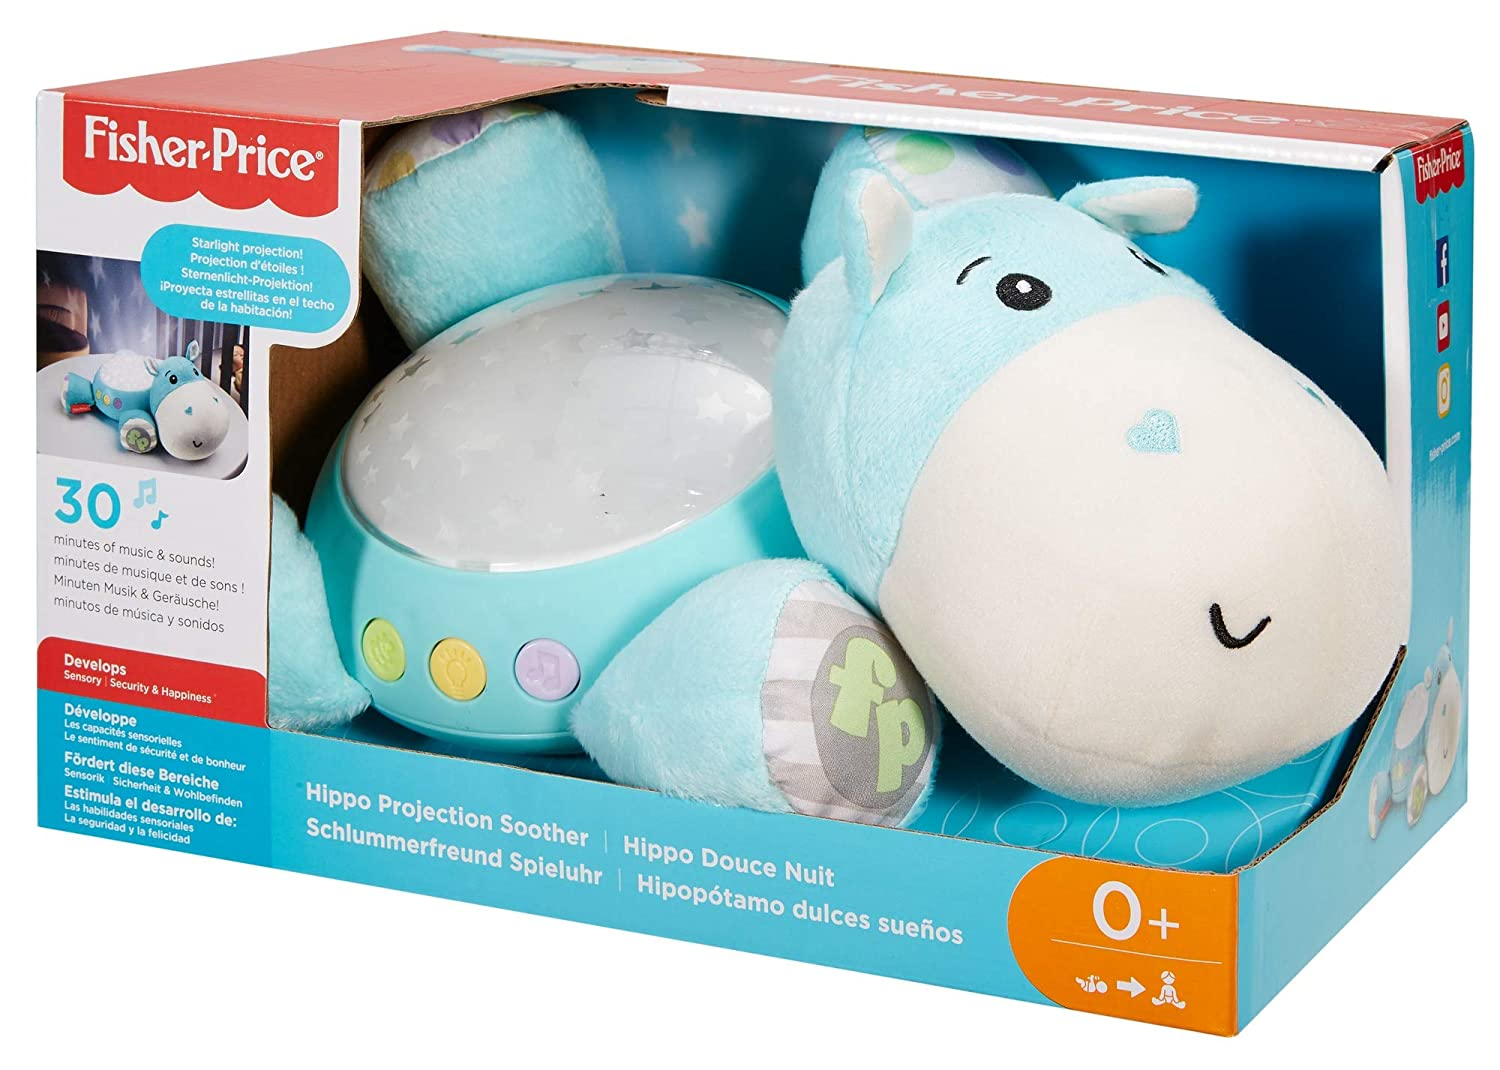 Fisher Price CGN86 Hippo Projection Soother